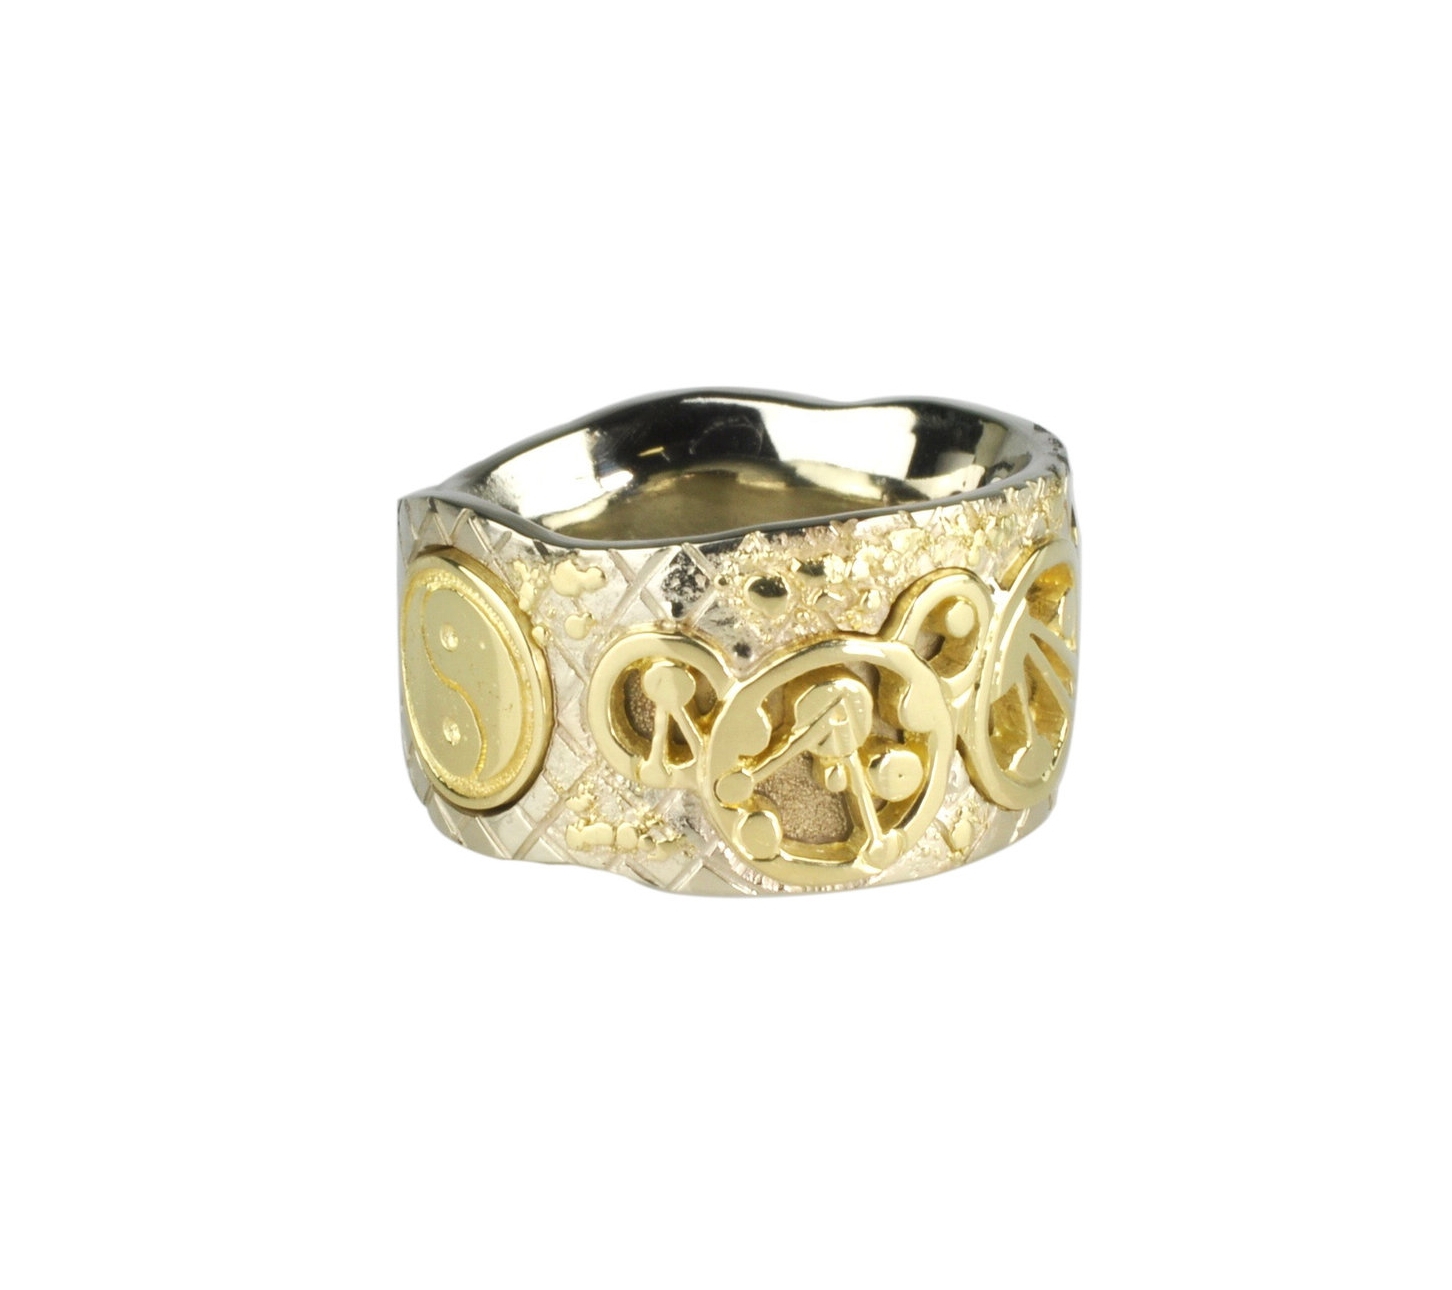 14k White Gold Gallifreyan Ring with Fusion and Inlay